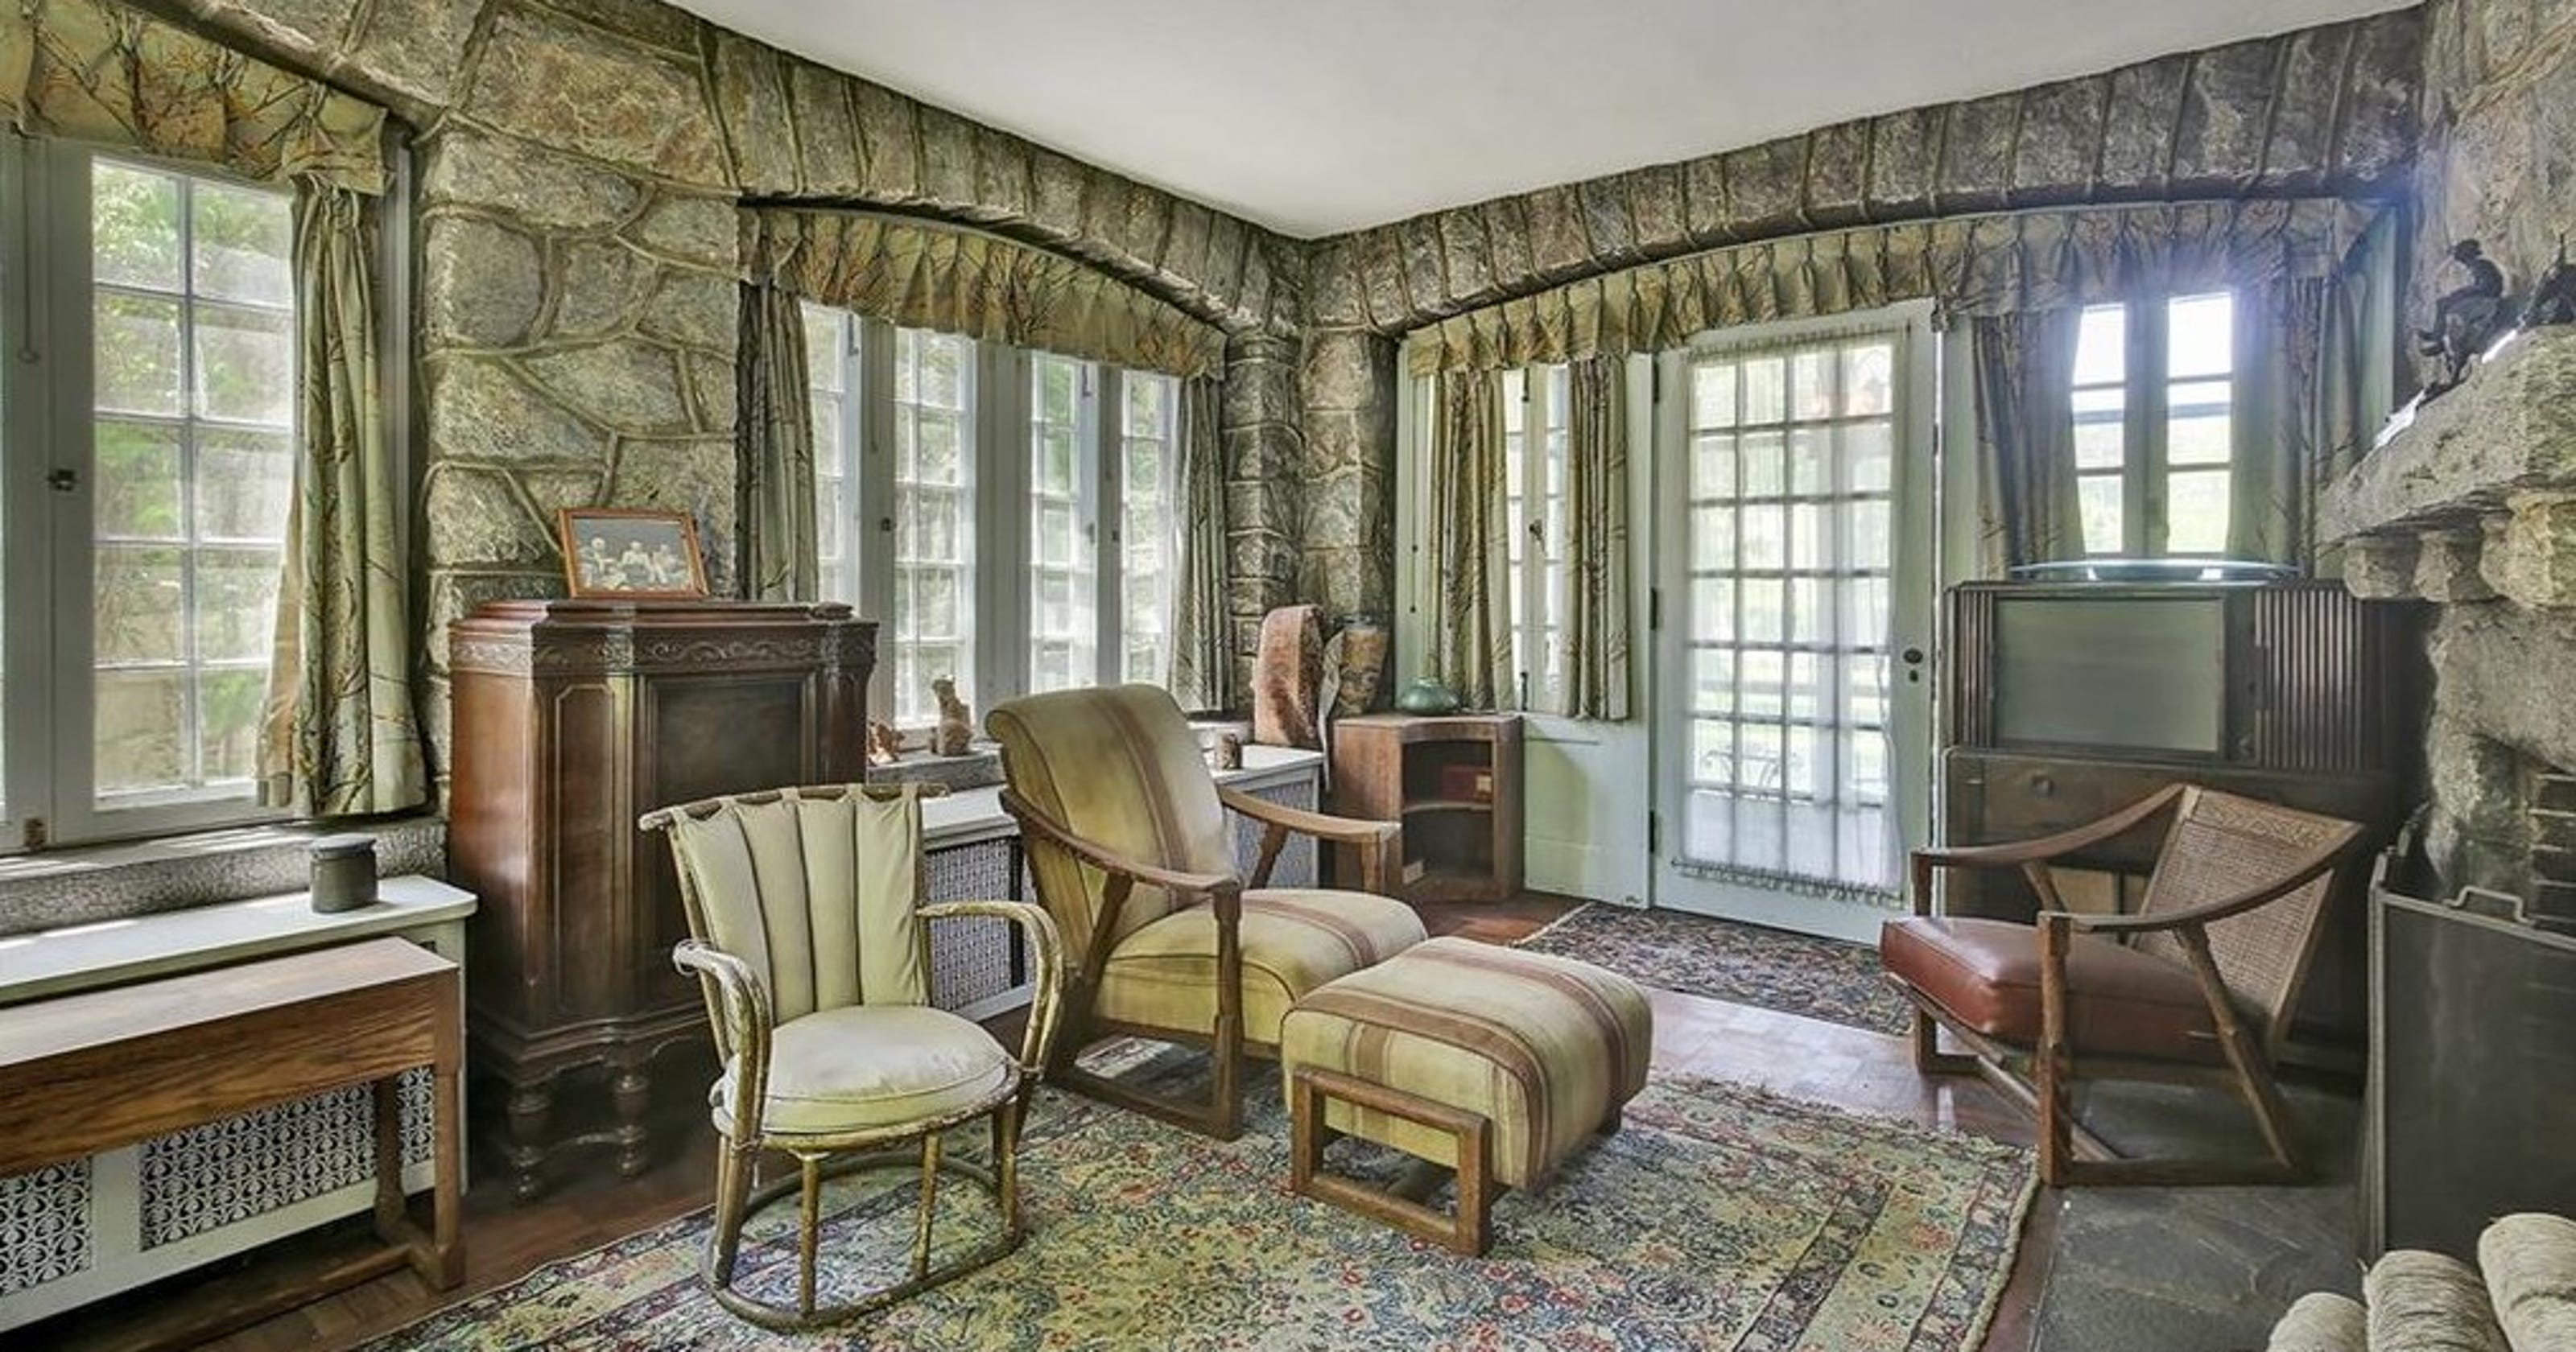 This Pelham house has been vacant since 1969